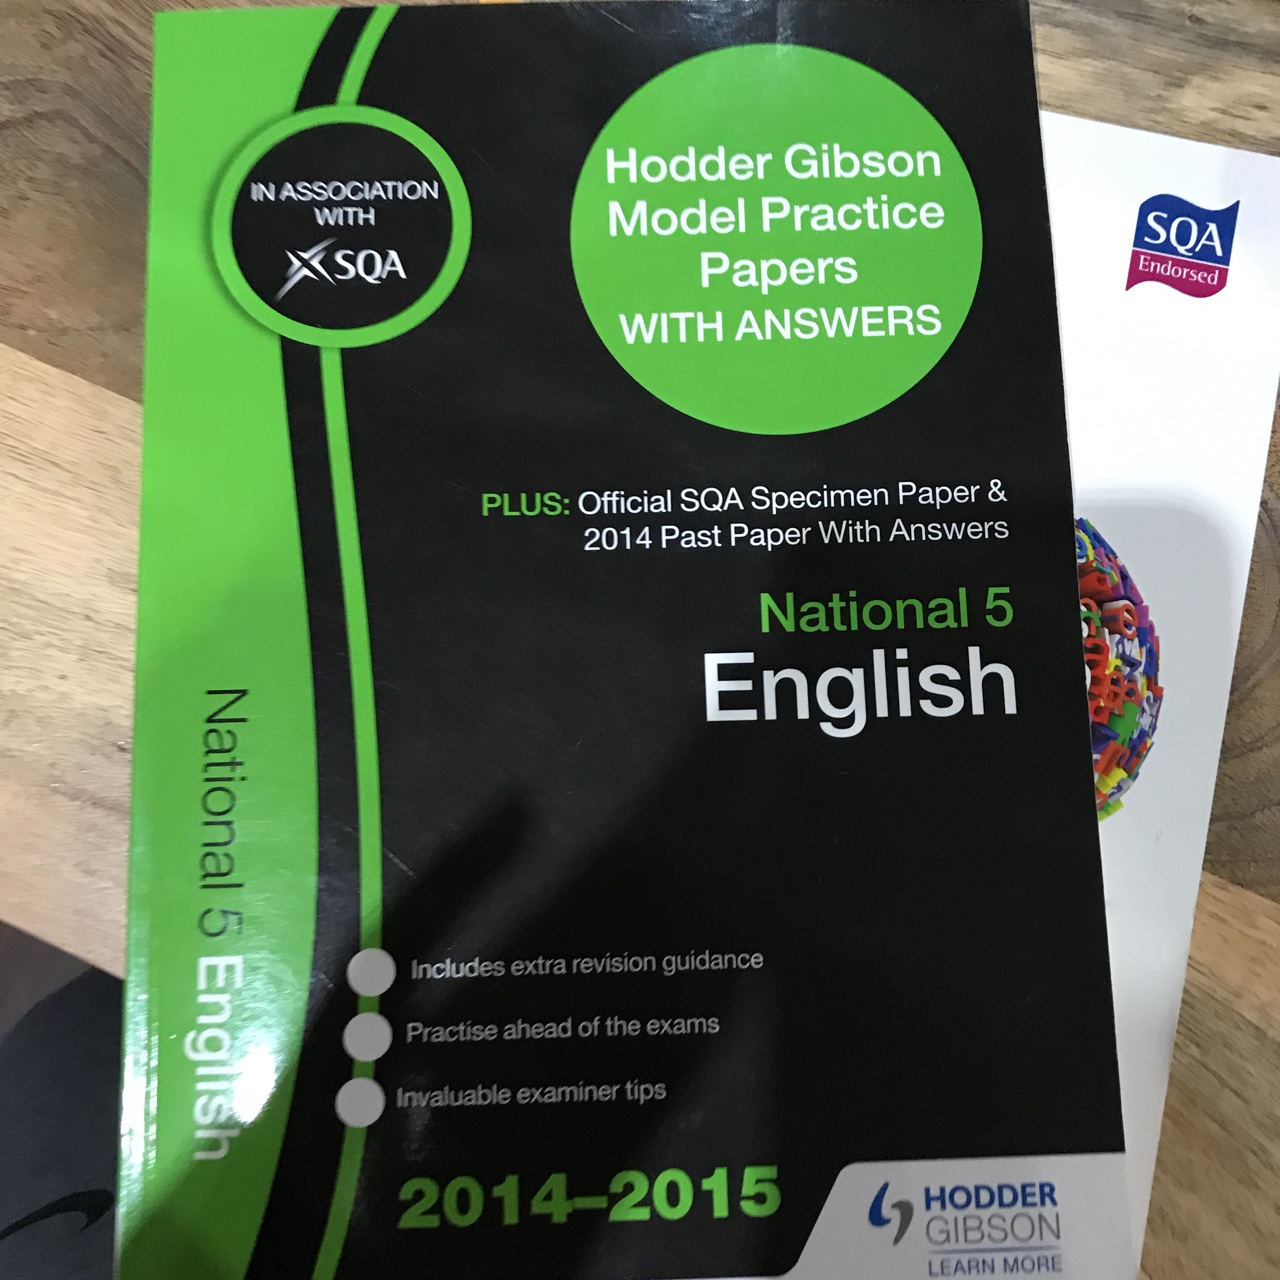 2 English past papers and how to pass books  RRP    - Depop